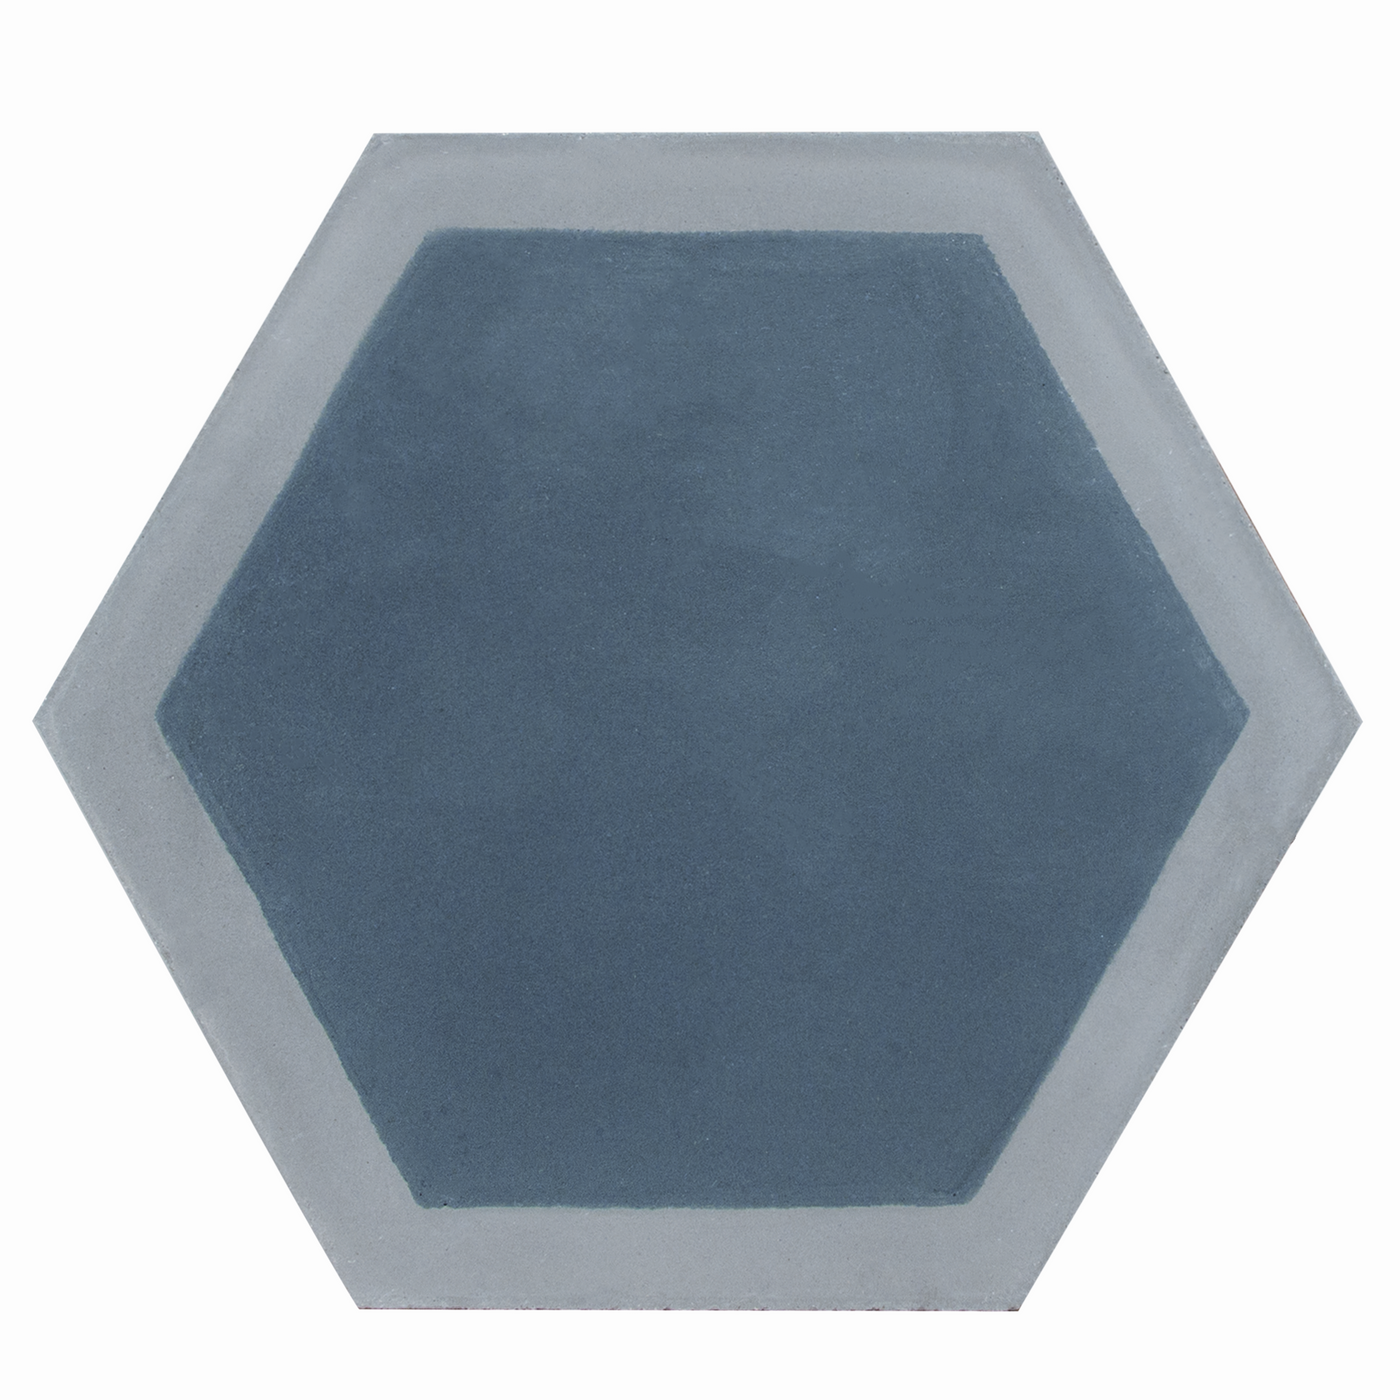 Hexagon cement tile pattern grey/dark blue